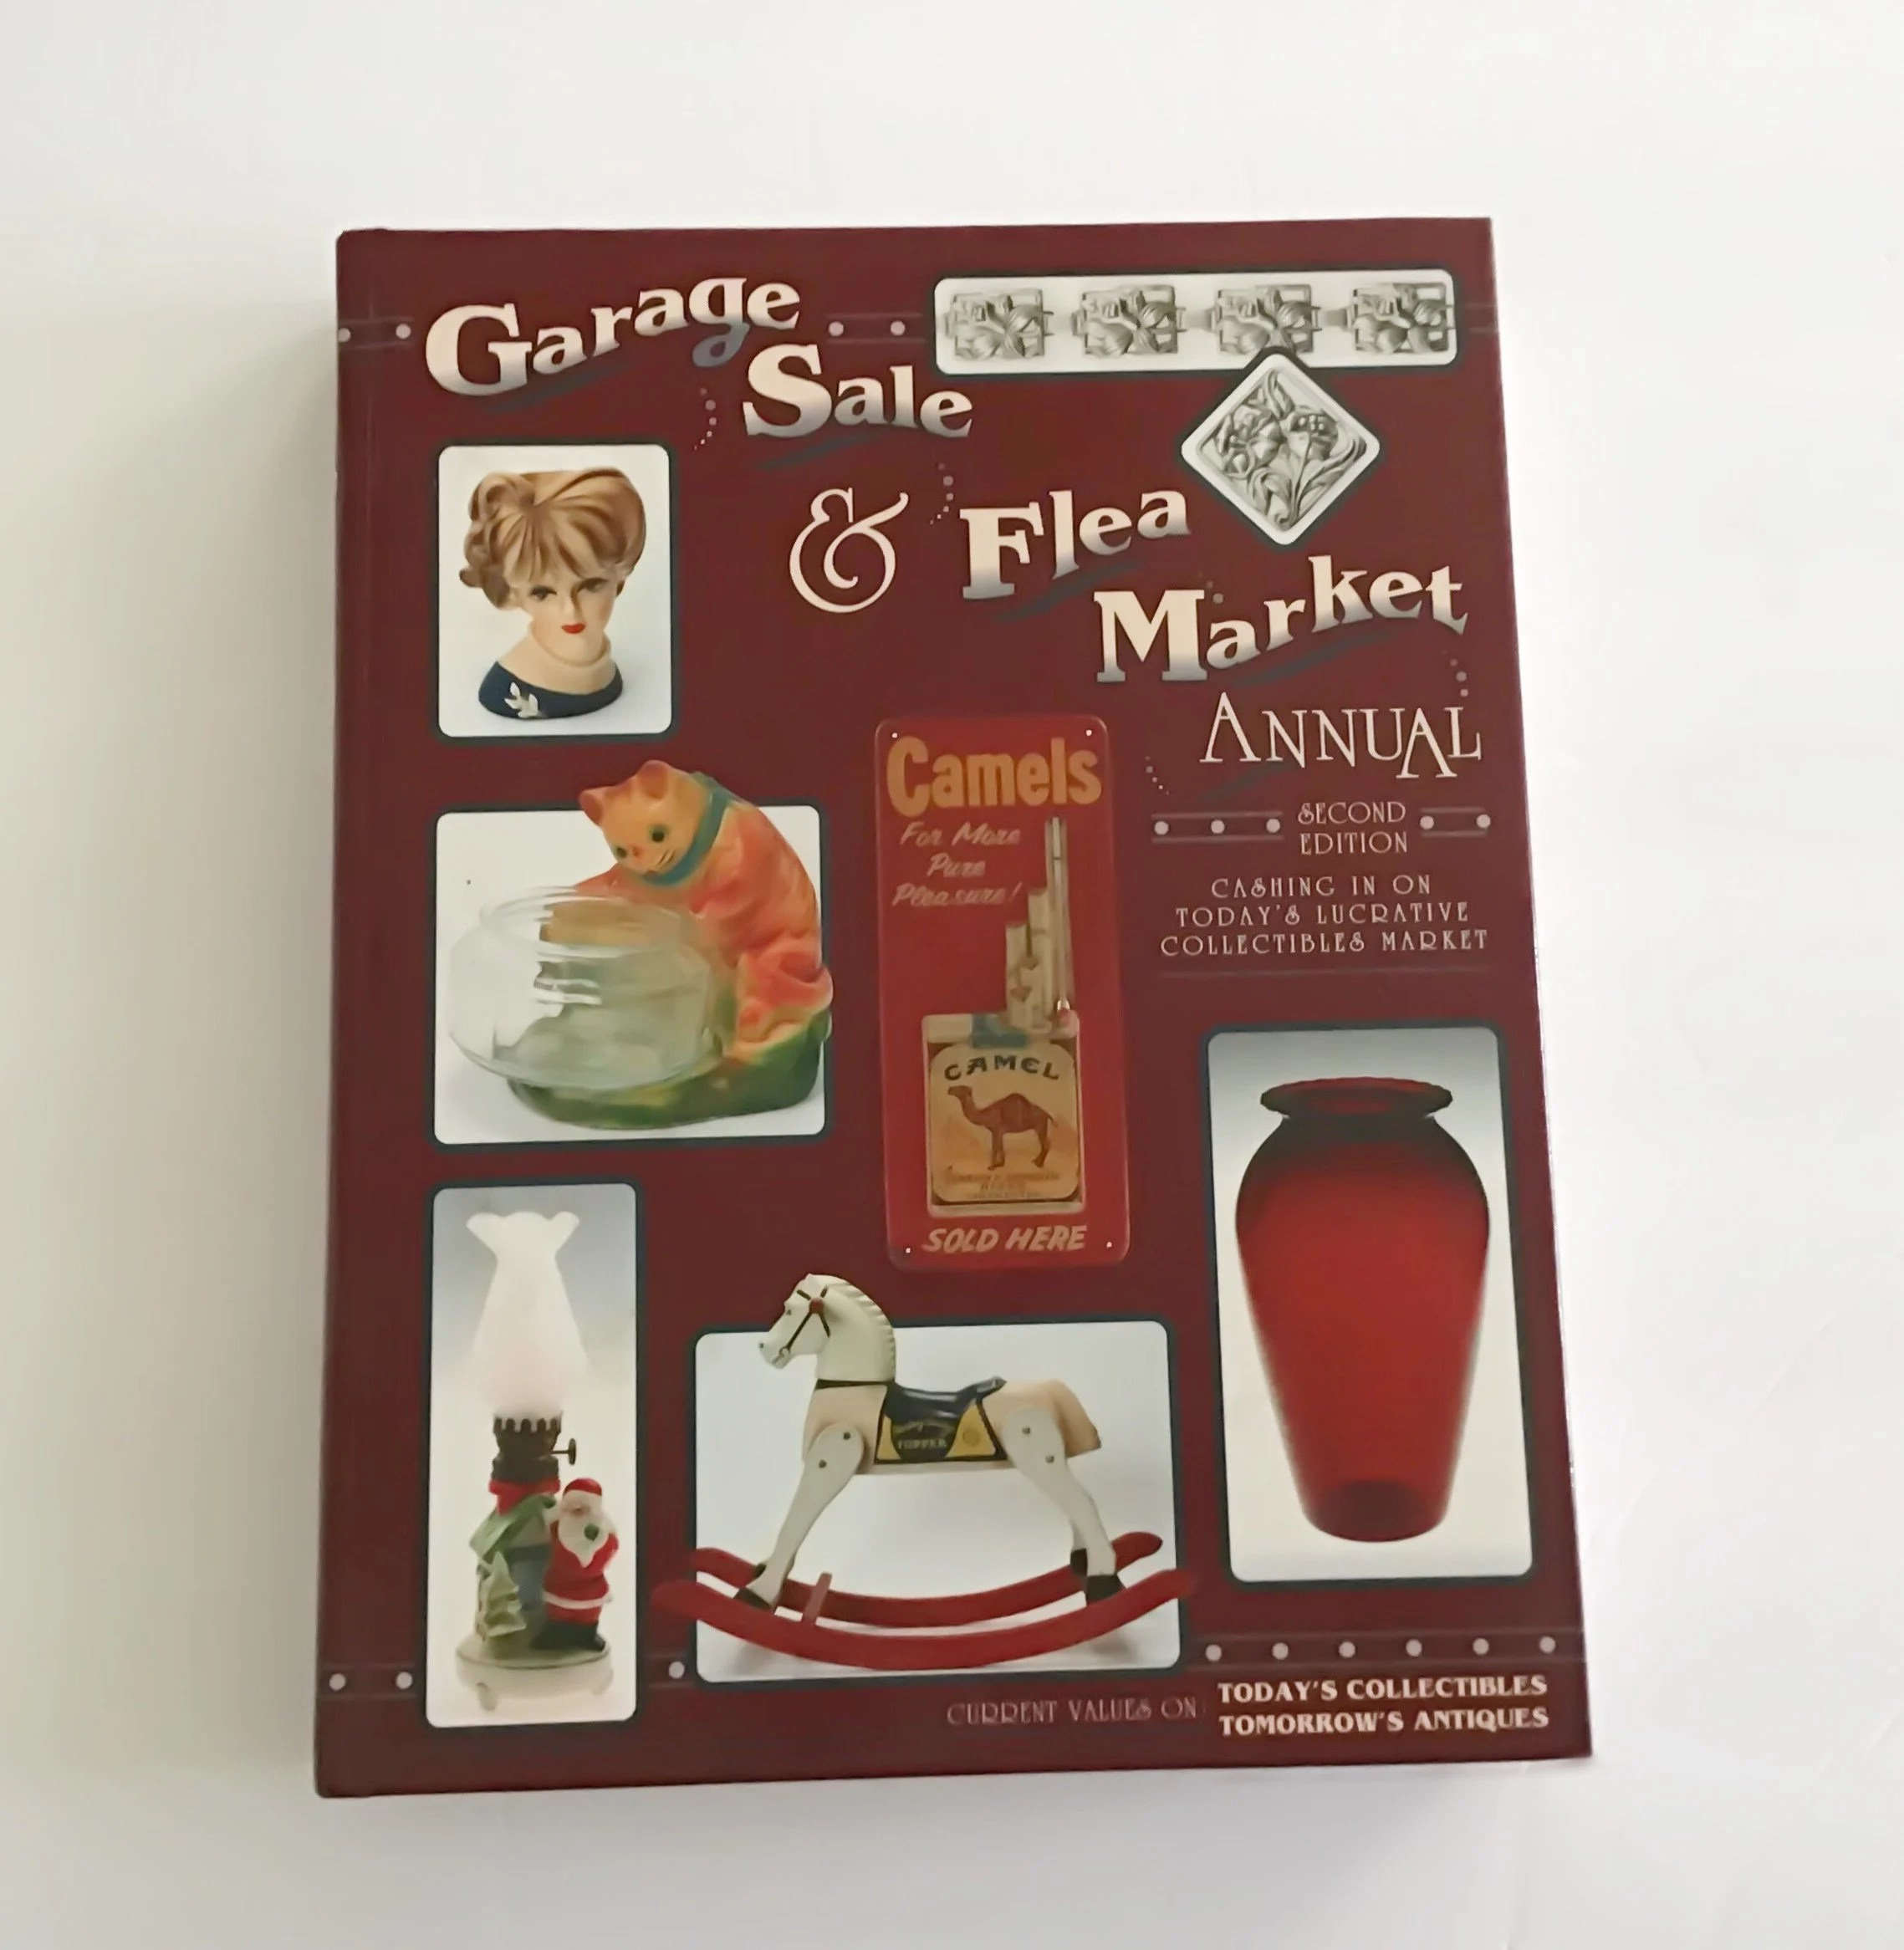 Garage Sale Book Prices Garage Sale Flea Market Annual Price Guide 2nd Edition Copyright 1994